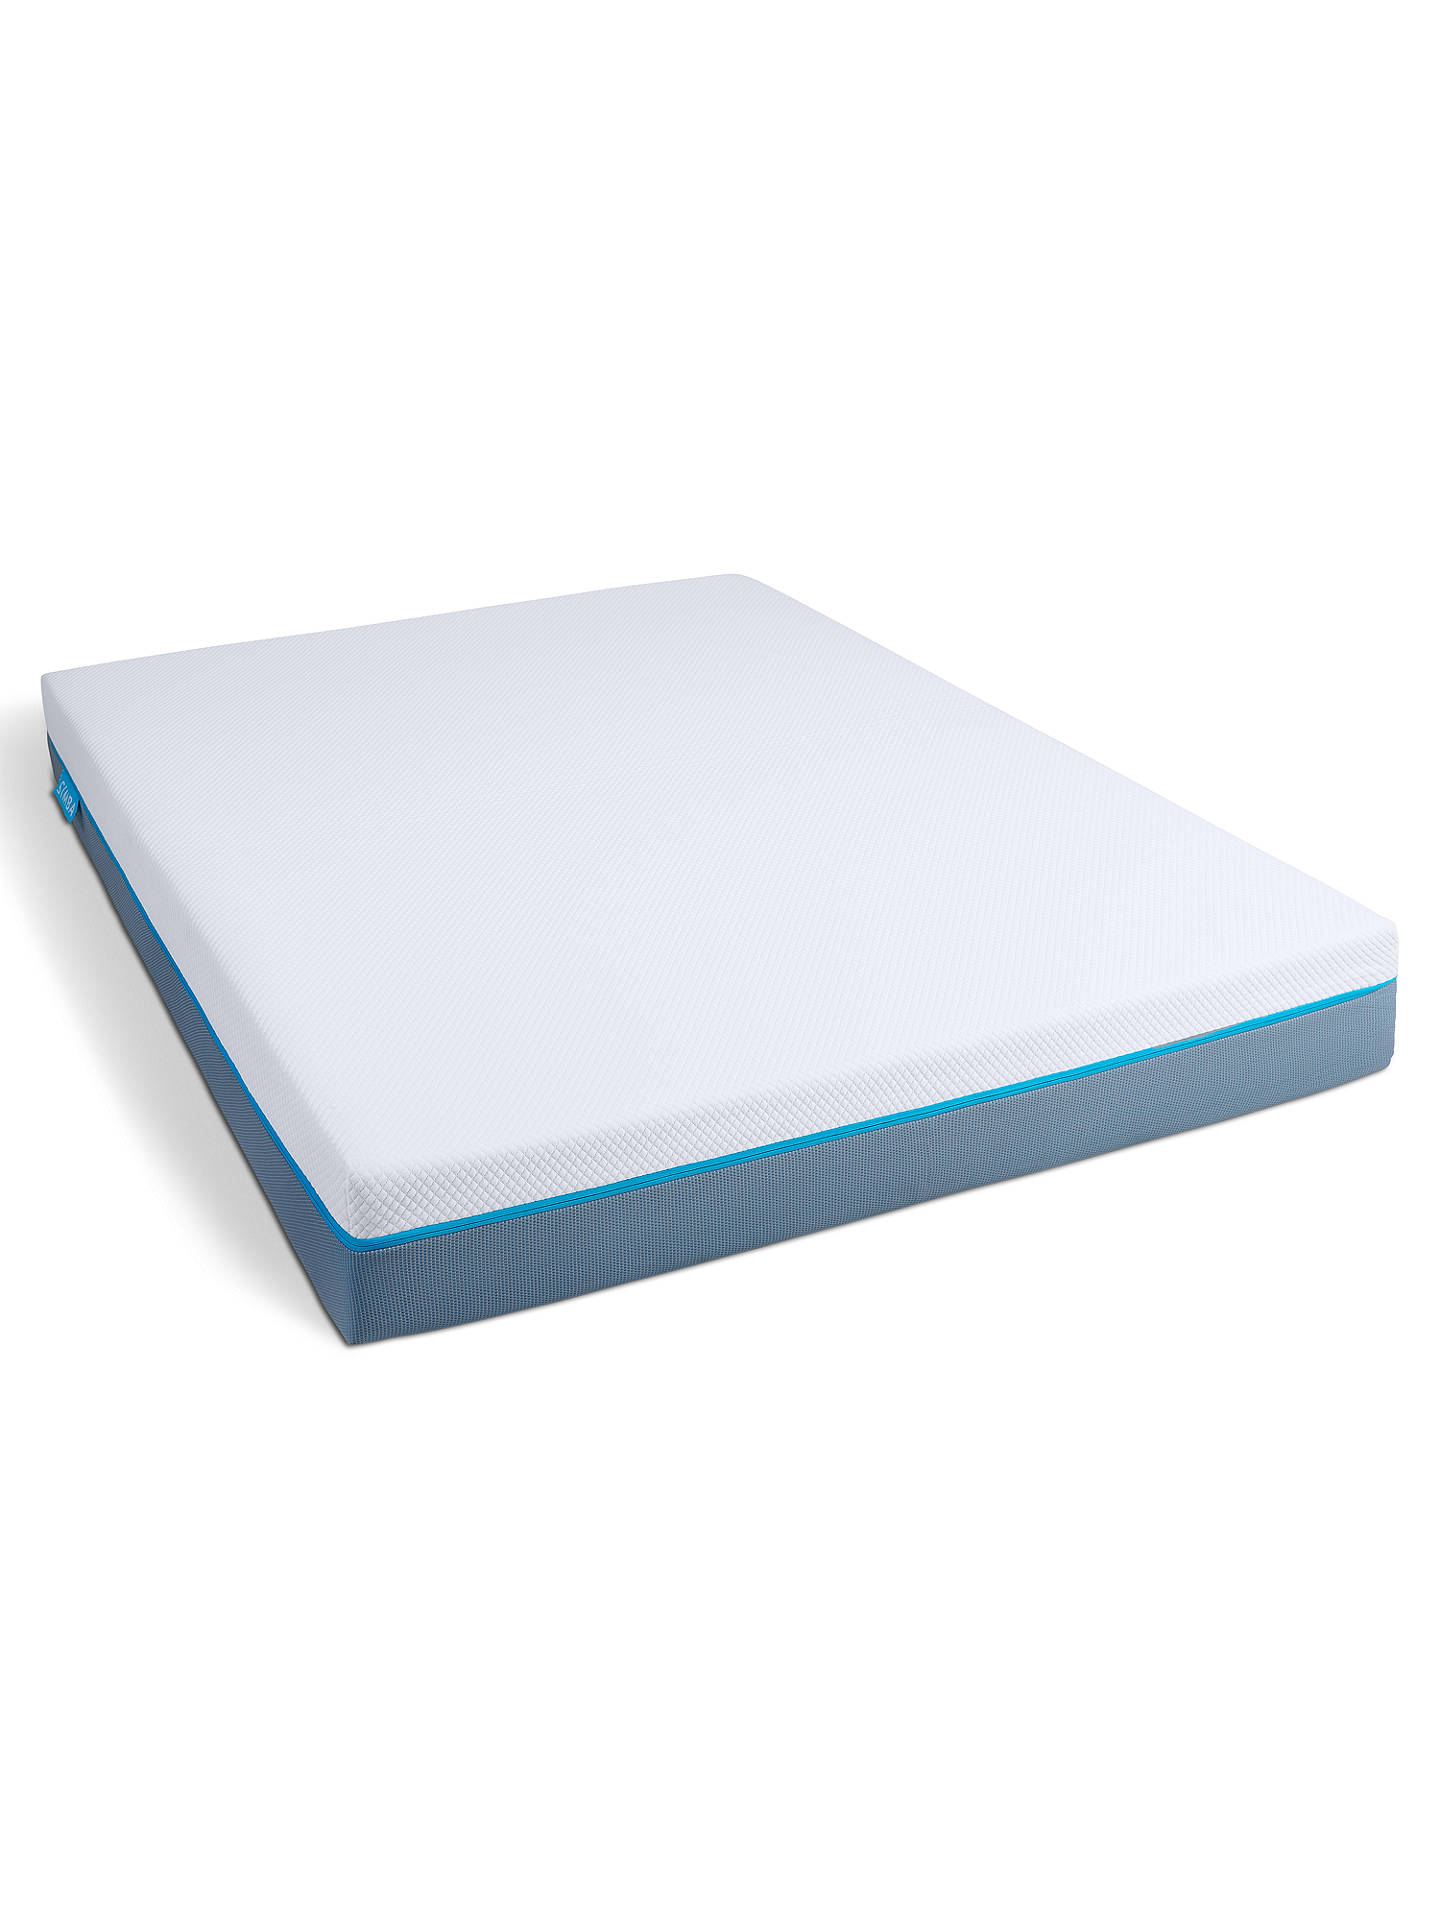 on sale aad38 d2113 SIMBA Hybrid® Memory Foam Pocket Spring Mattress, Medium Tension, Super  King Size